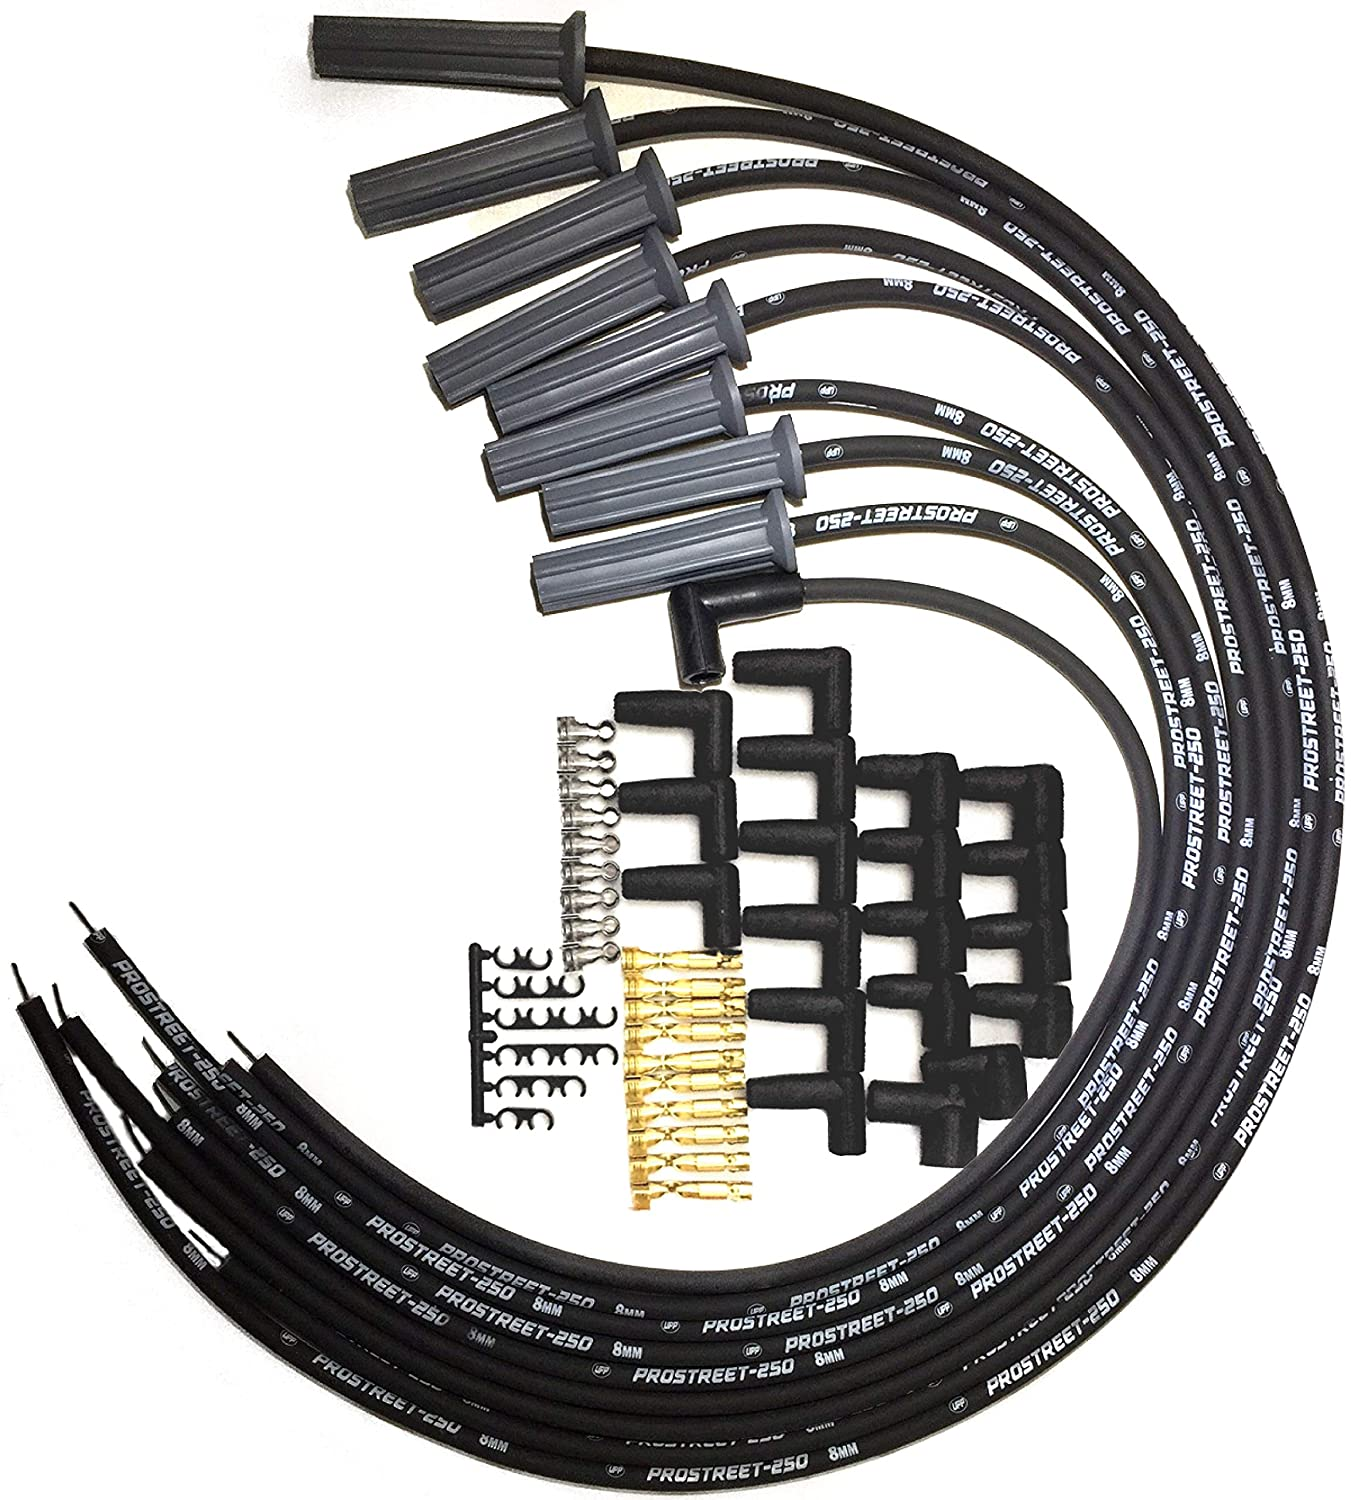 Upp Prostreet 250 Black 8mm Silicone High 454 Bbc Gm Distributor Coil Wiring Racing Universal Spark Plug Wire Set Ohm Wound Core 180 Degree Boots Terminals Fits Chevy Sbc 283 350 383 400 427 Automotive